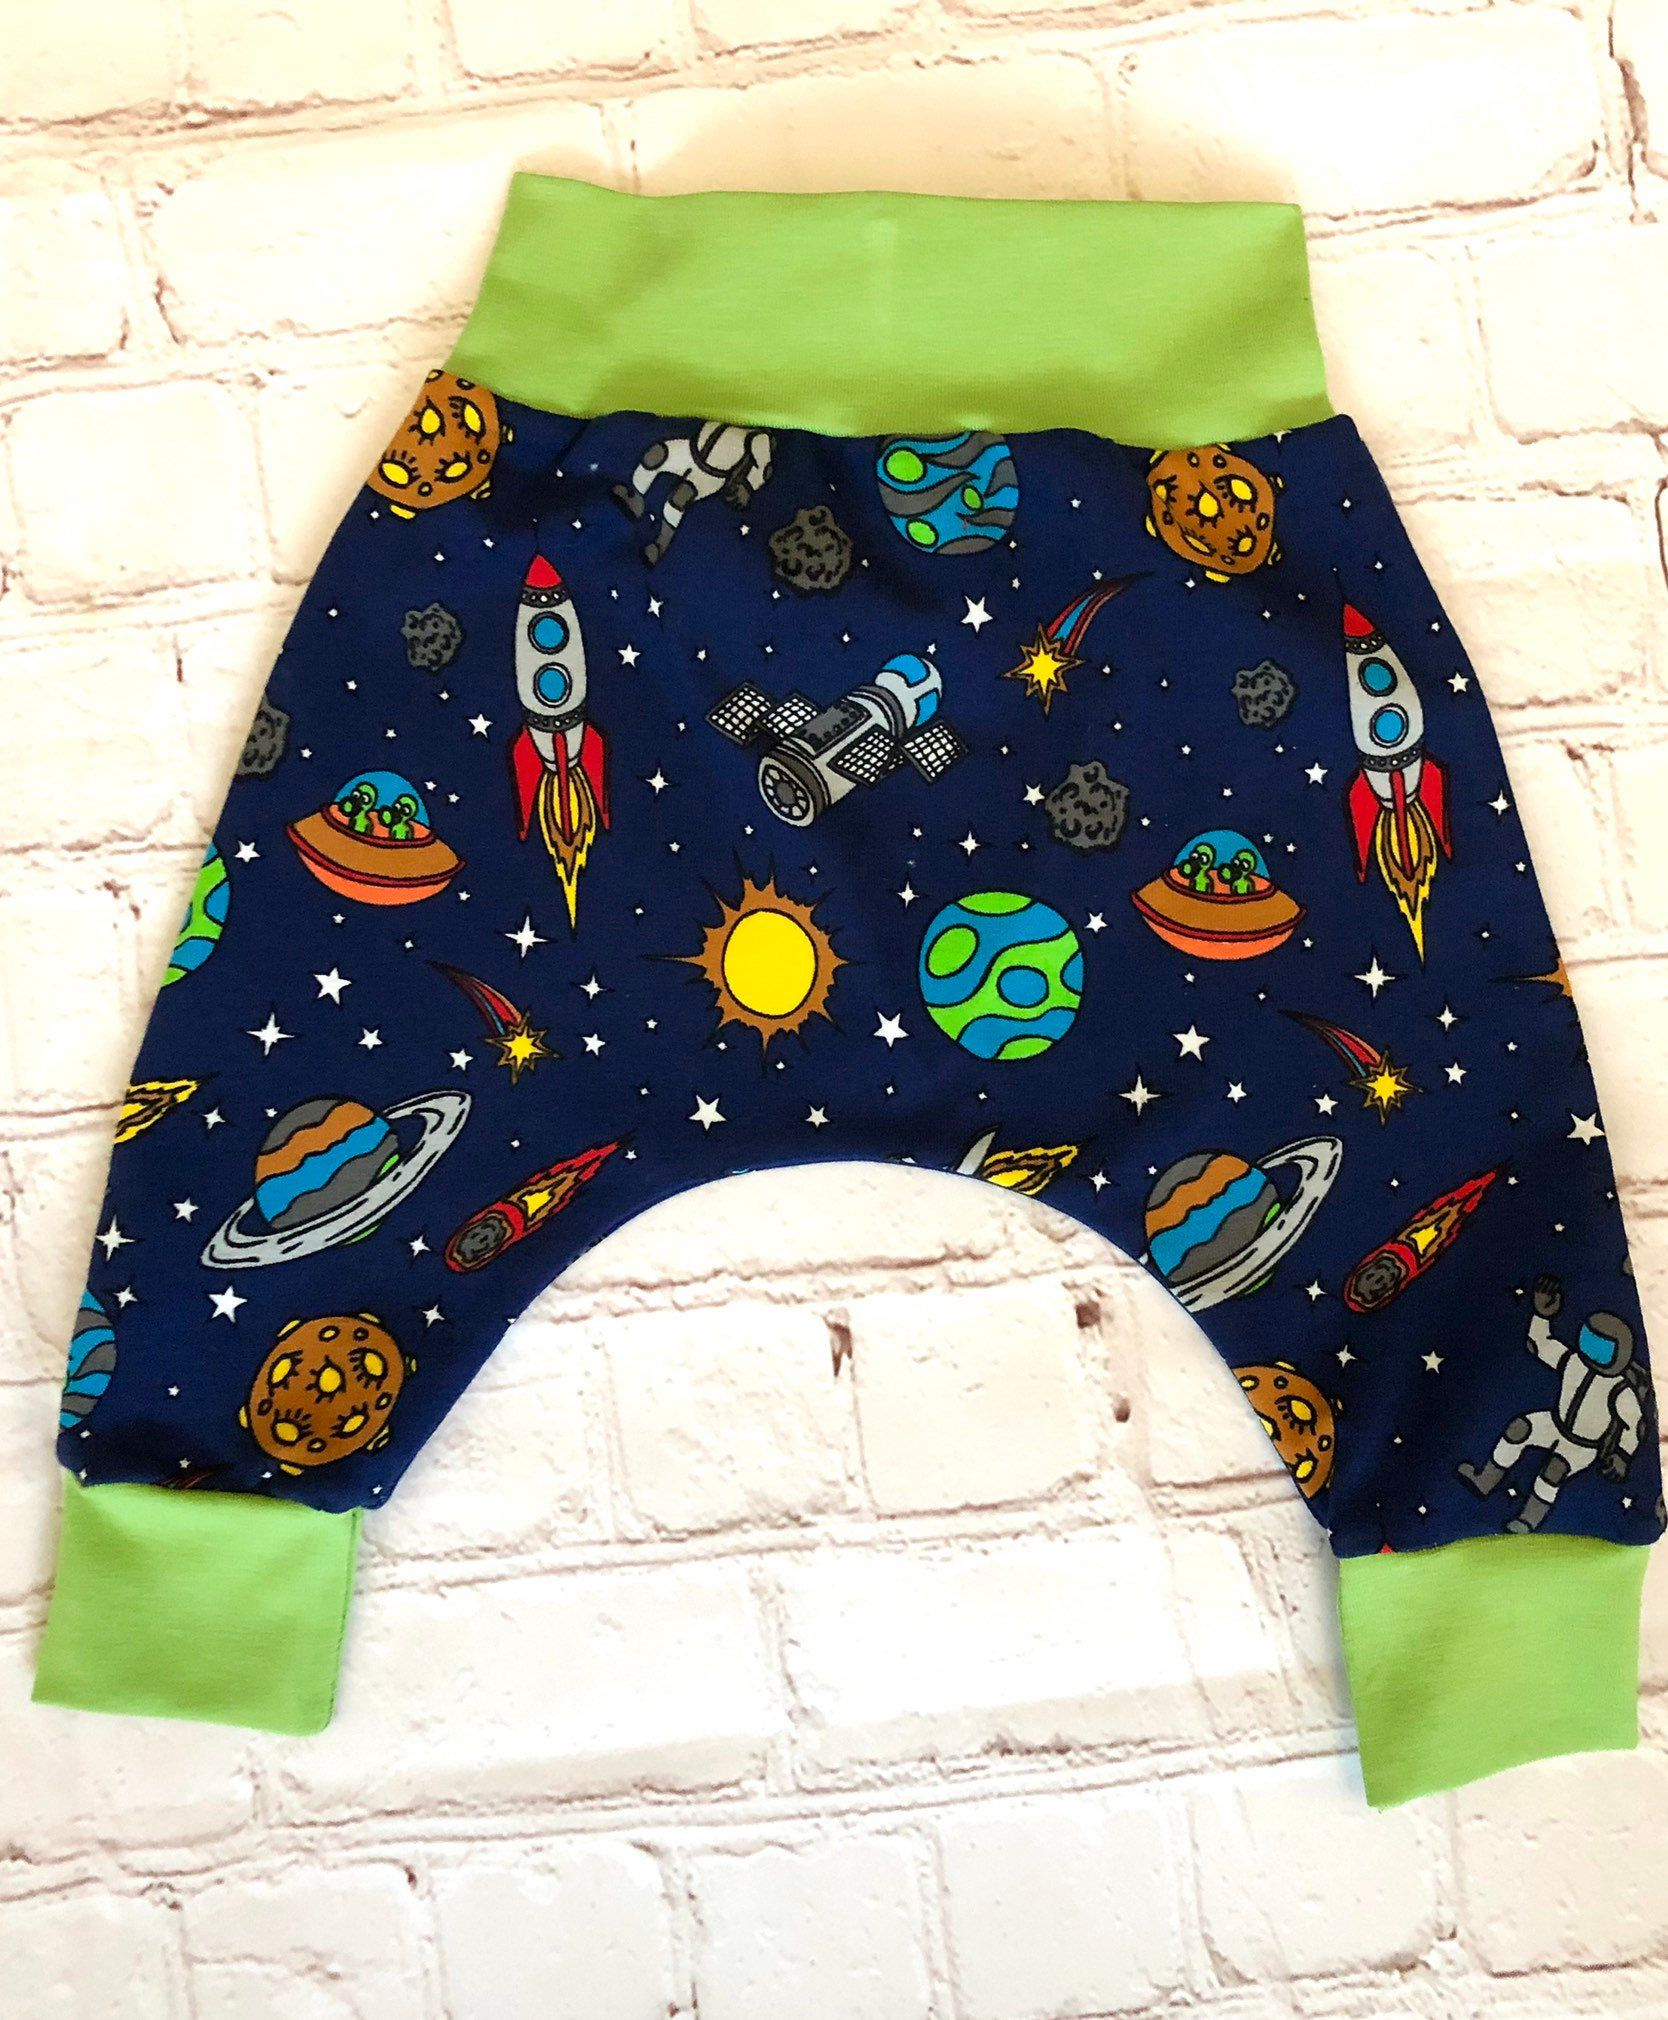 Baby Harem Trousers, Age 0-3 Months, Space Fabric Excited to share this item from my shop: Baby Harem Trousers, Age 0-3 Months, Space Fabric